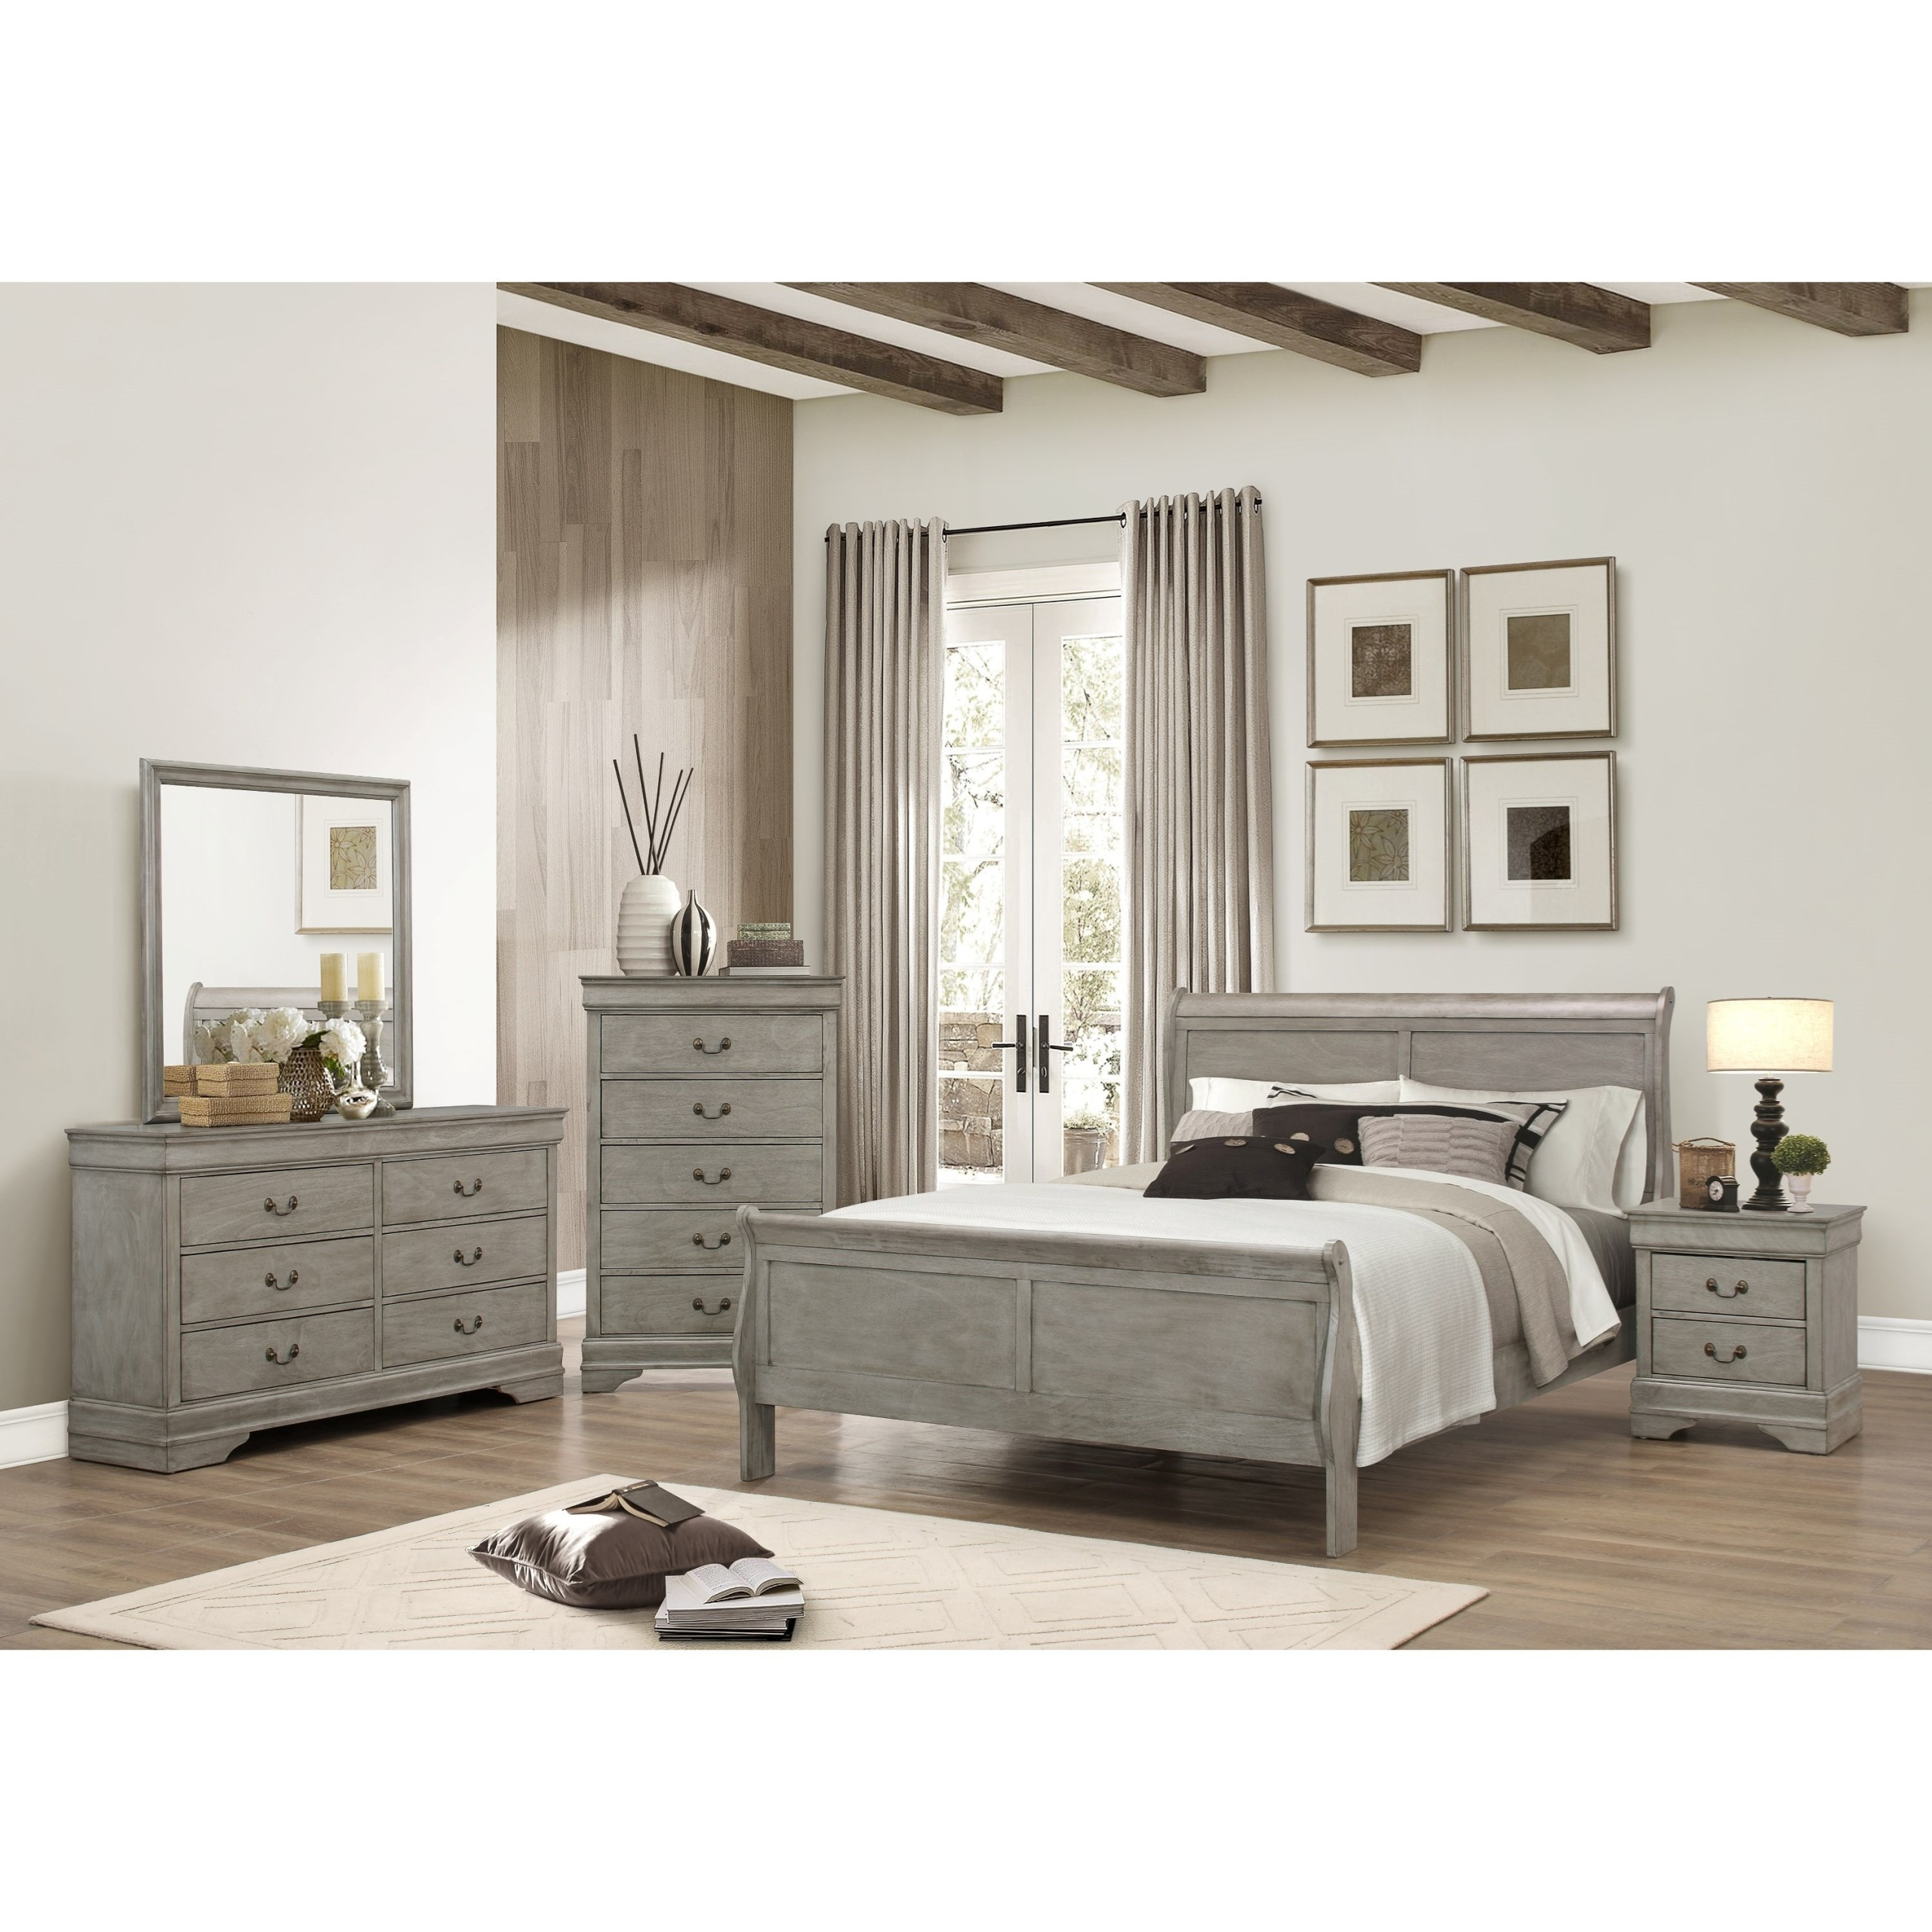 7PC Complete Gray Bedroom Suite Package Deal